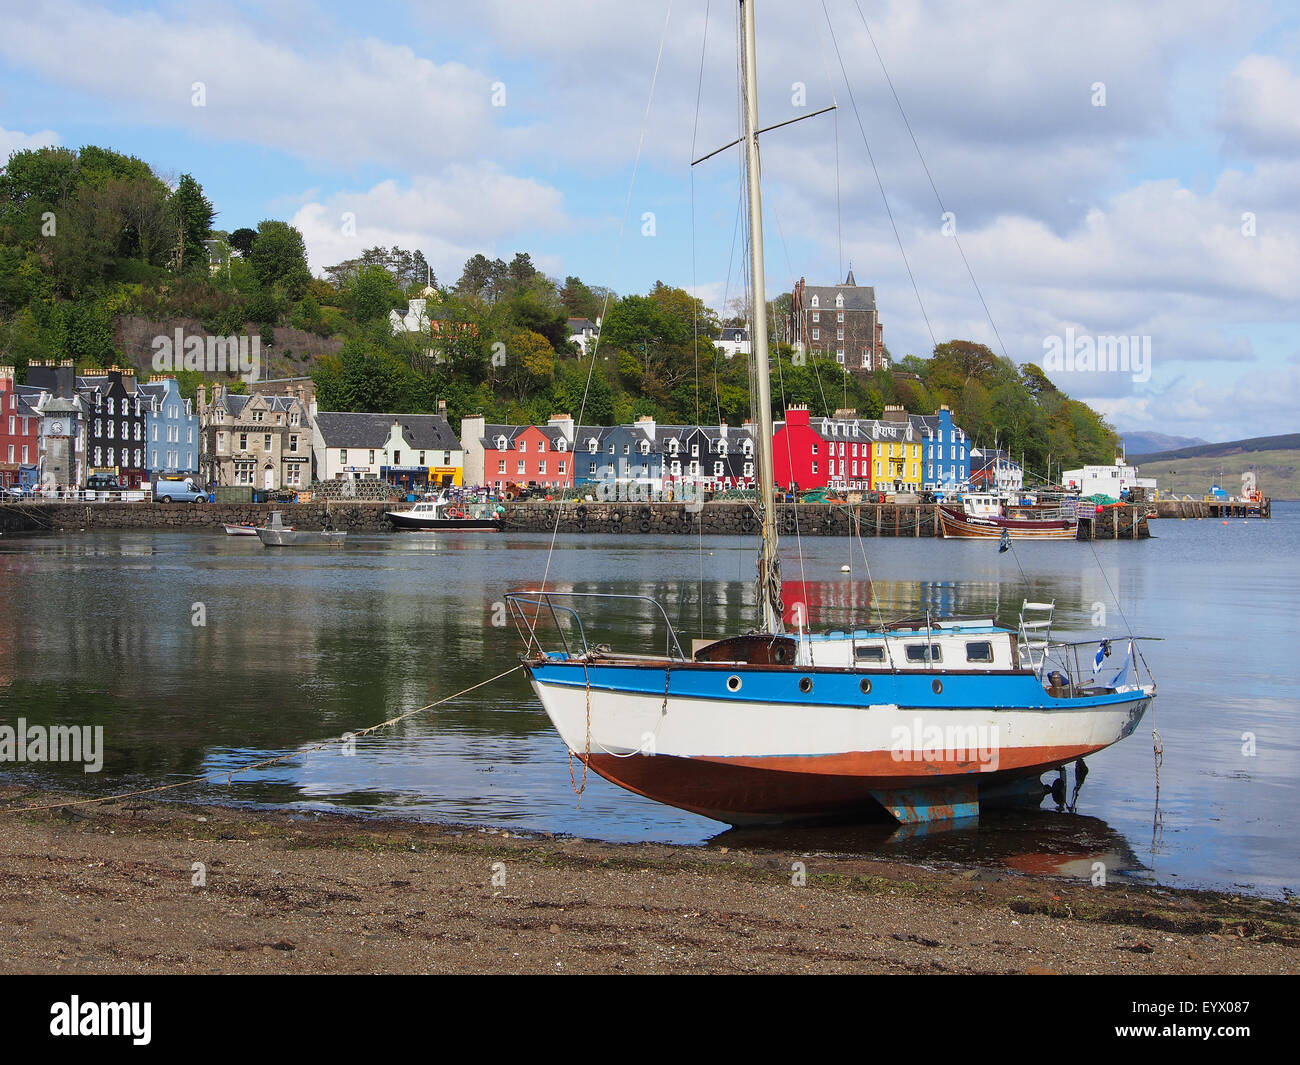 colourful-village-of-tobermory-on-the-is